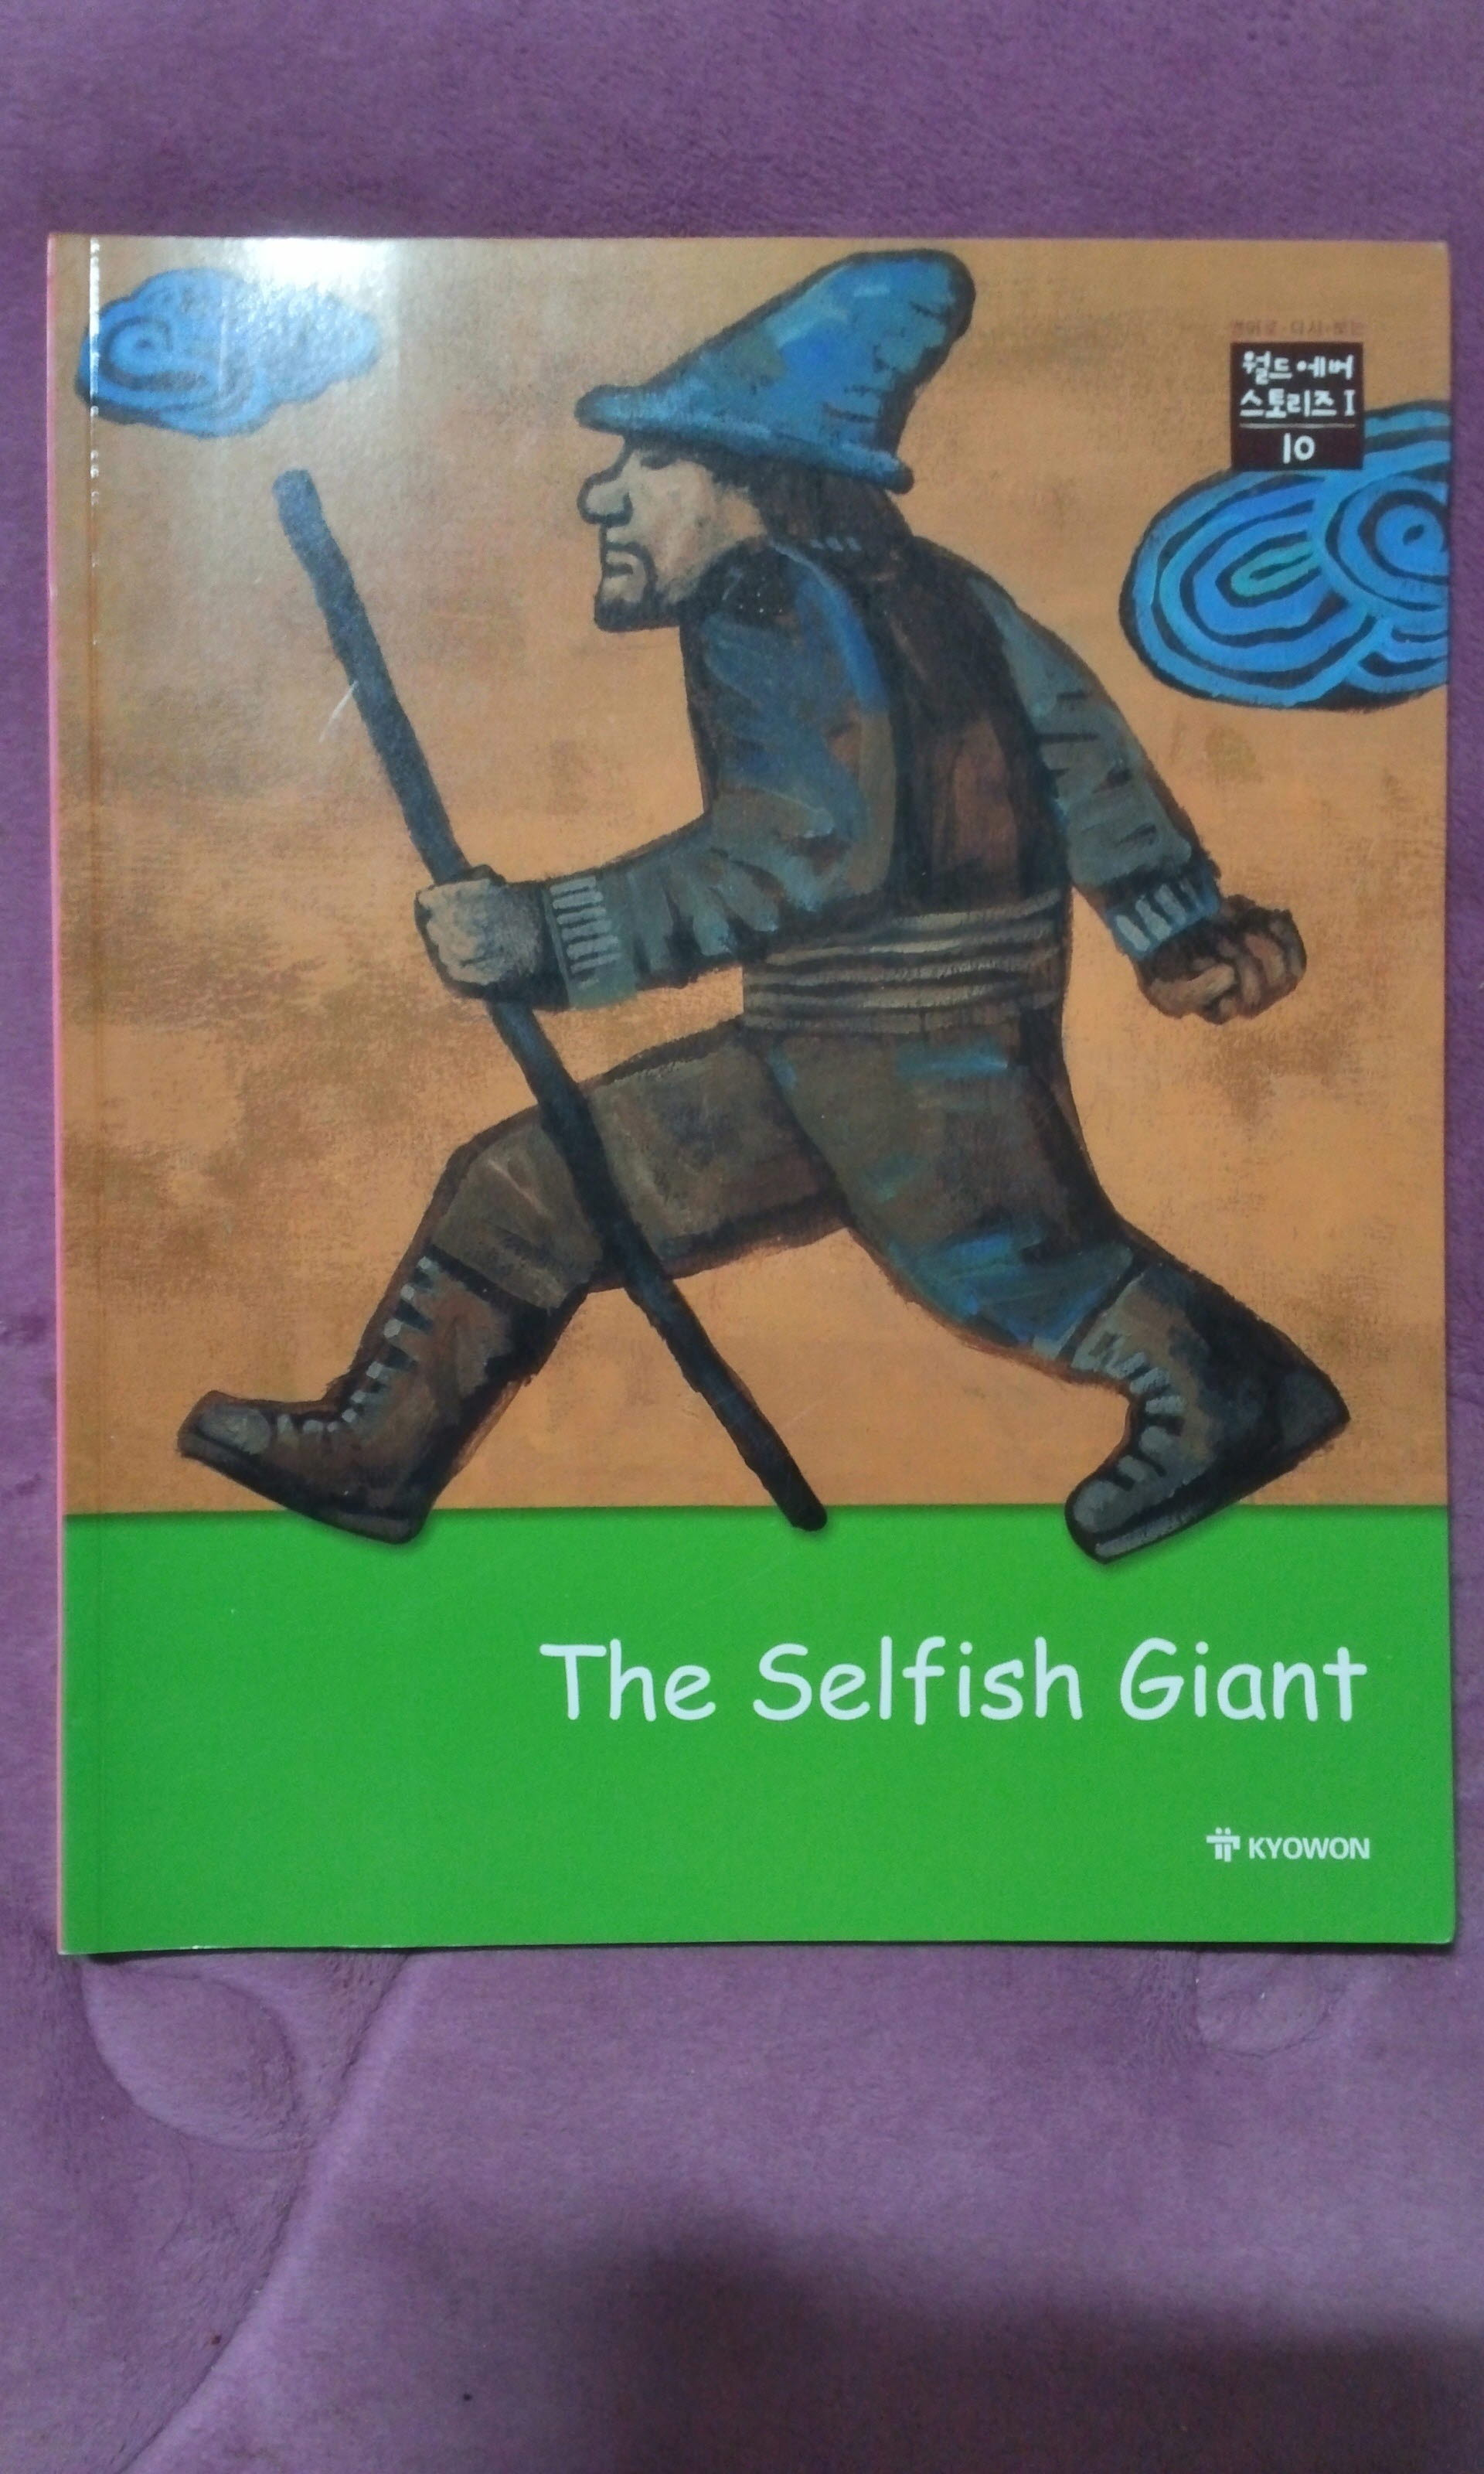 the selfish giant thesis statement essay The selfish giant – exploiting the potent christian symbolism of the stigmata at  the very  keisuke (japanese name order preserved) will be the focus of this  essay, with the  giant is an allegorical capitalist critique (bryne 91) – a theme  wilde would later explore in his  this model clearly reflects the publisher's  statement.